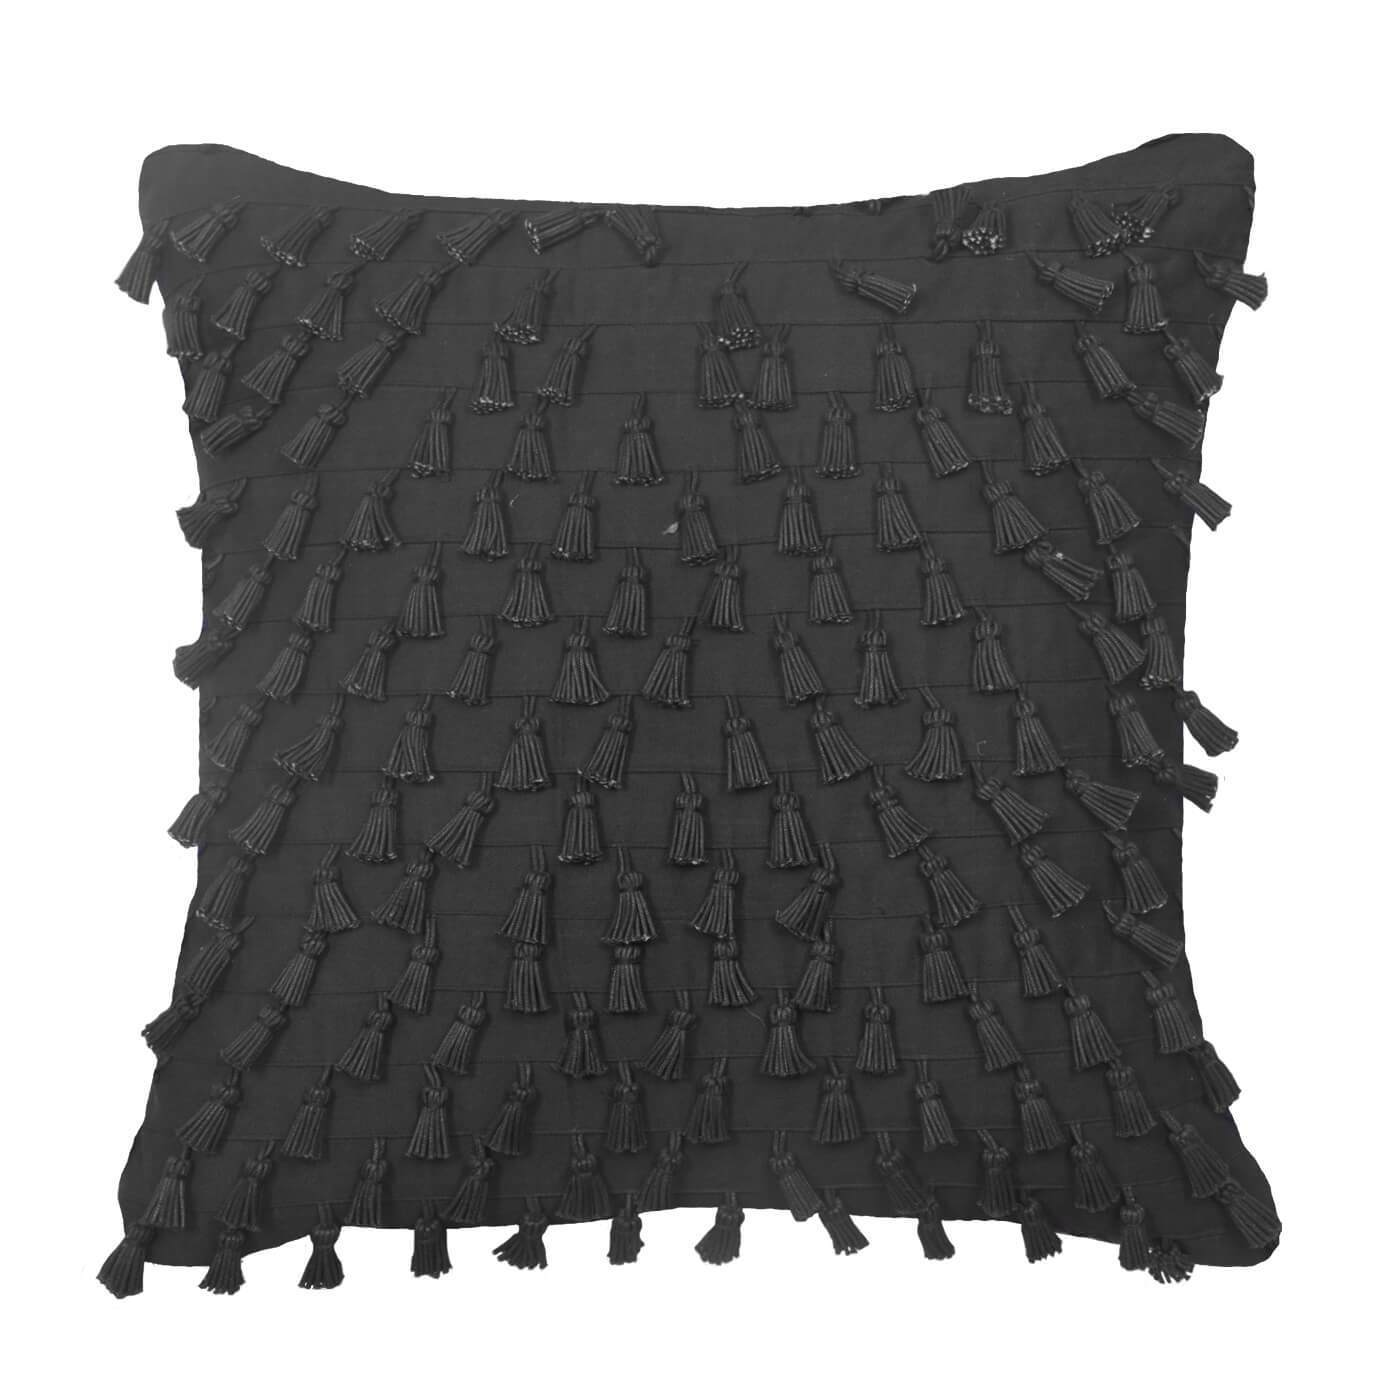 Bandhini Homewear Design Medium Cushion Black / Exotic Dark / 19 x 19 Tassel Mini Black Medium Cushion 50 x 50 cm